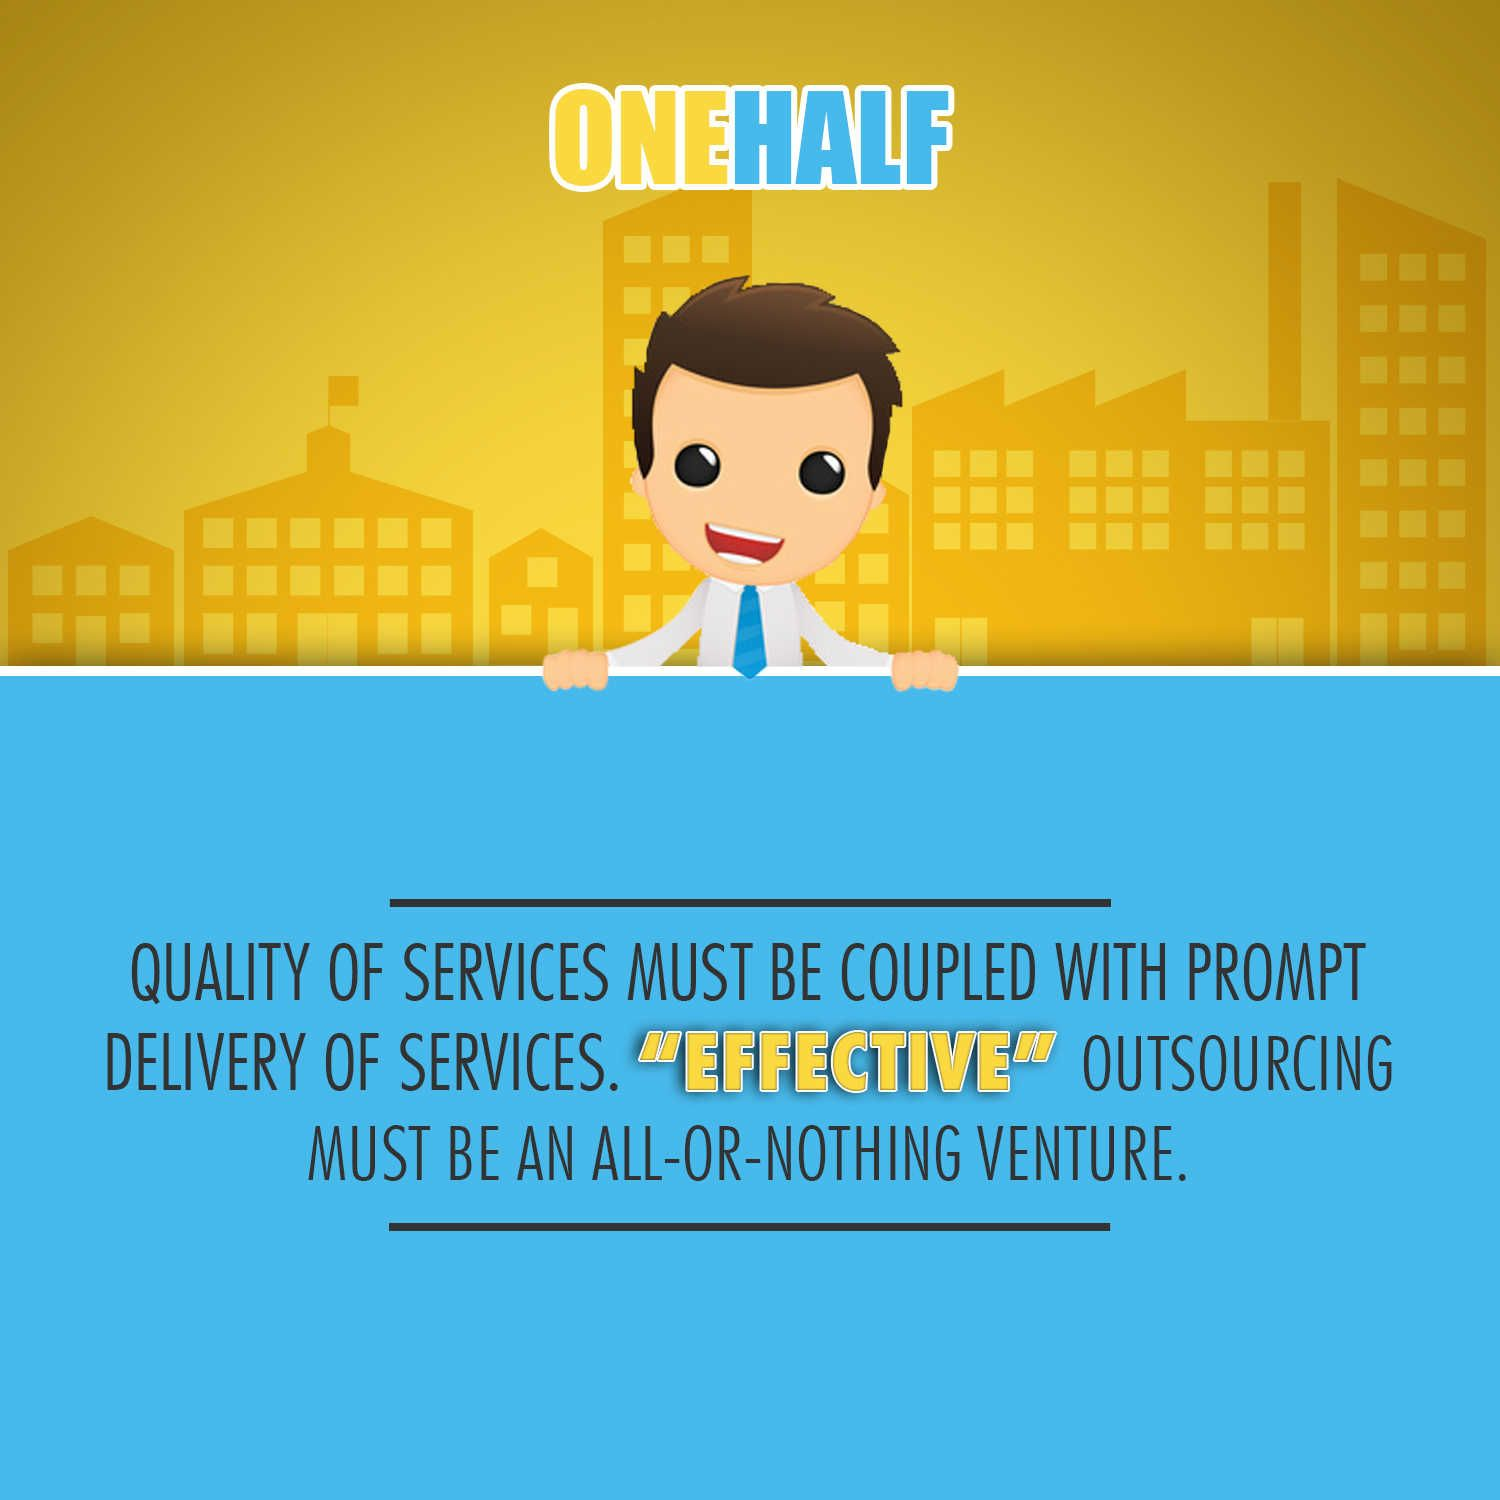 This is the reason why you should outsource to OneHalf